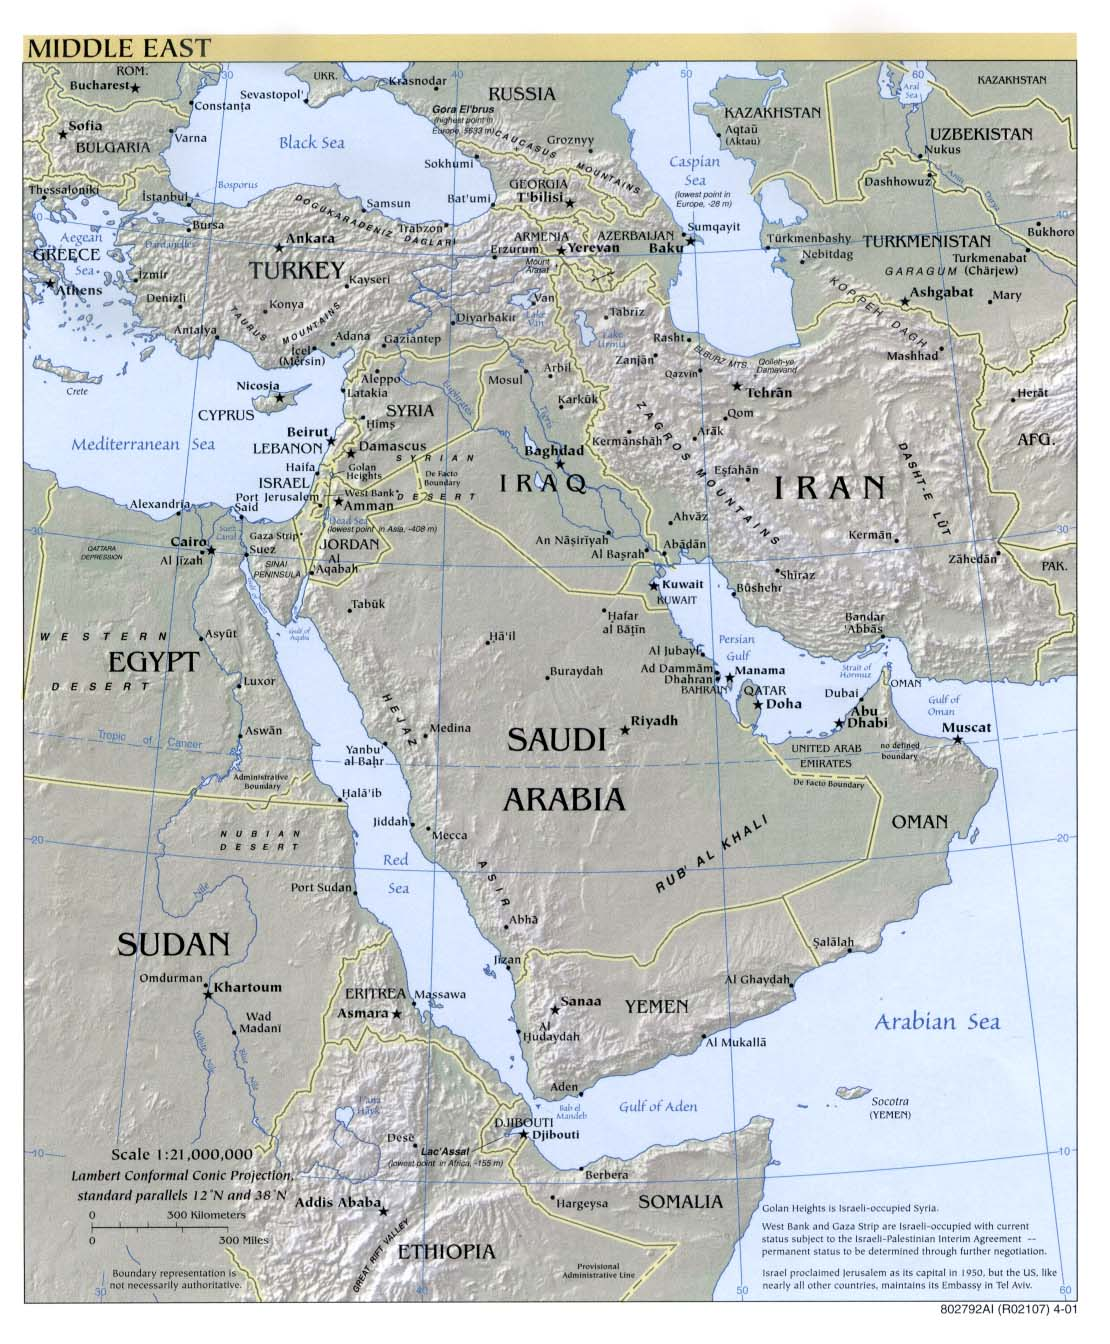 Middle East Map Saudi Arabia mappery